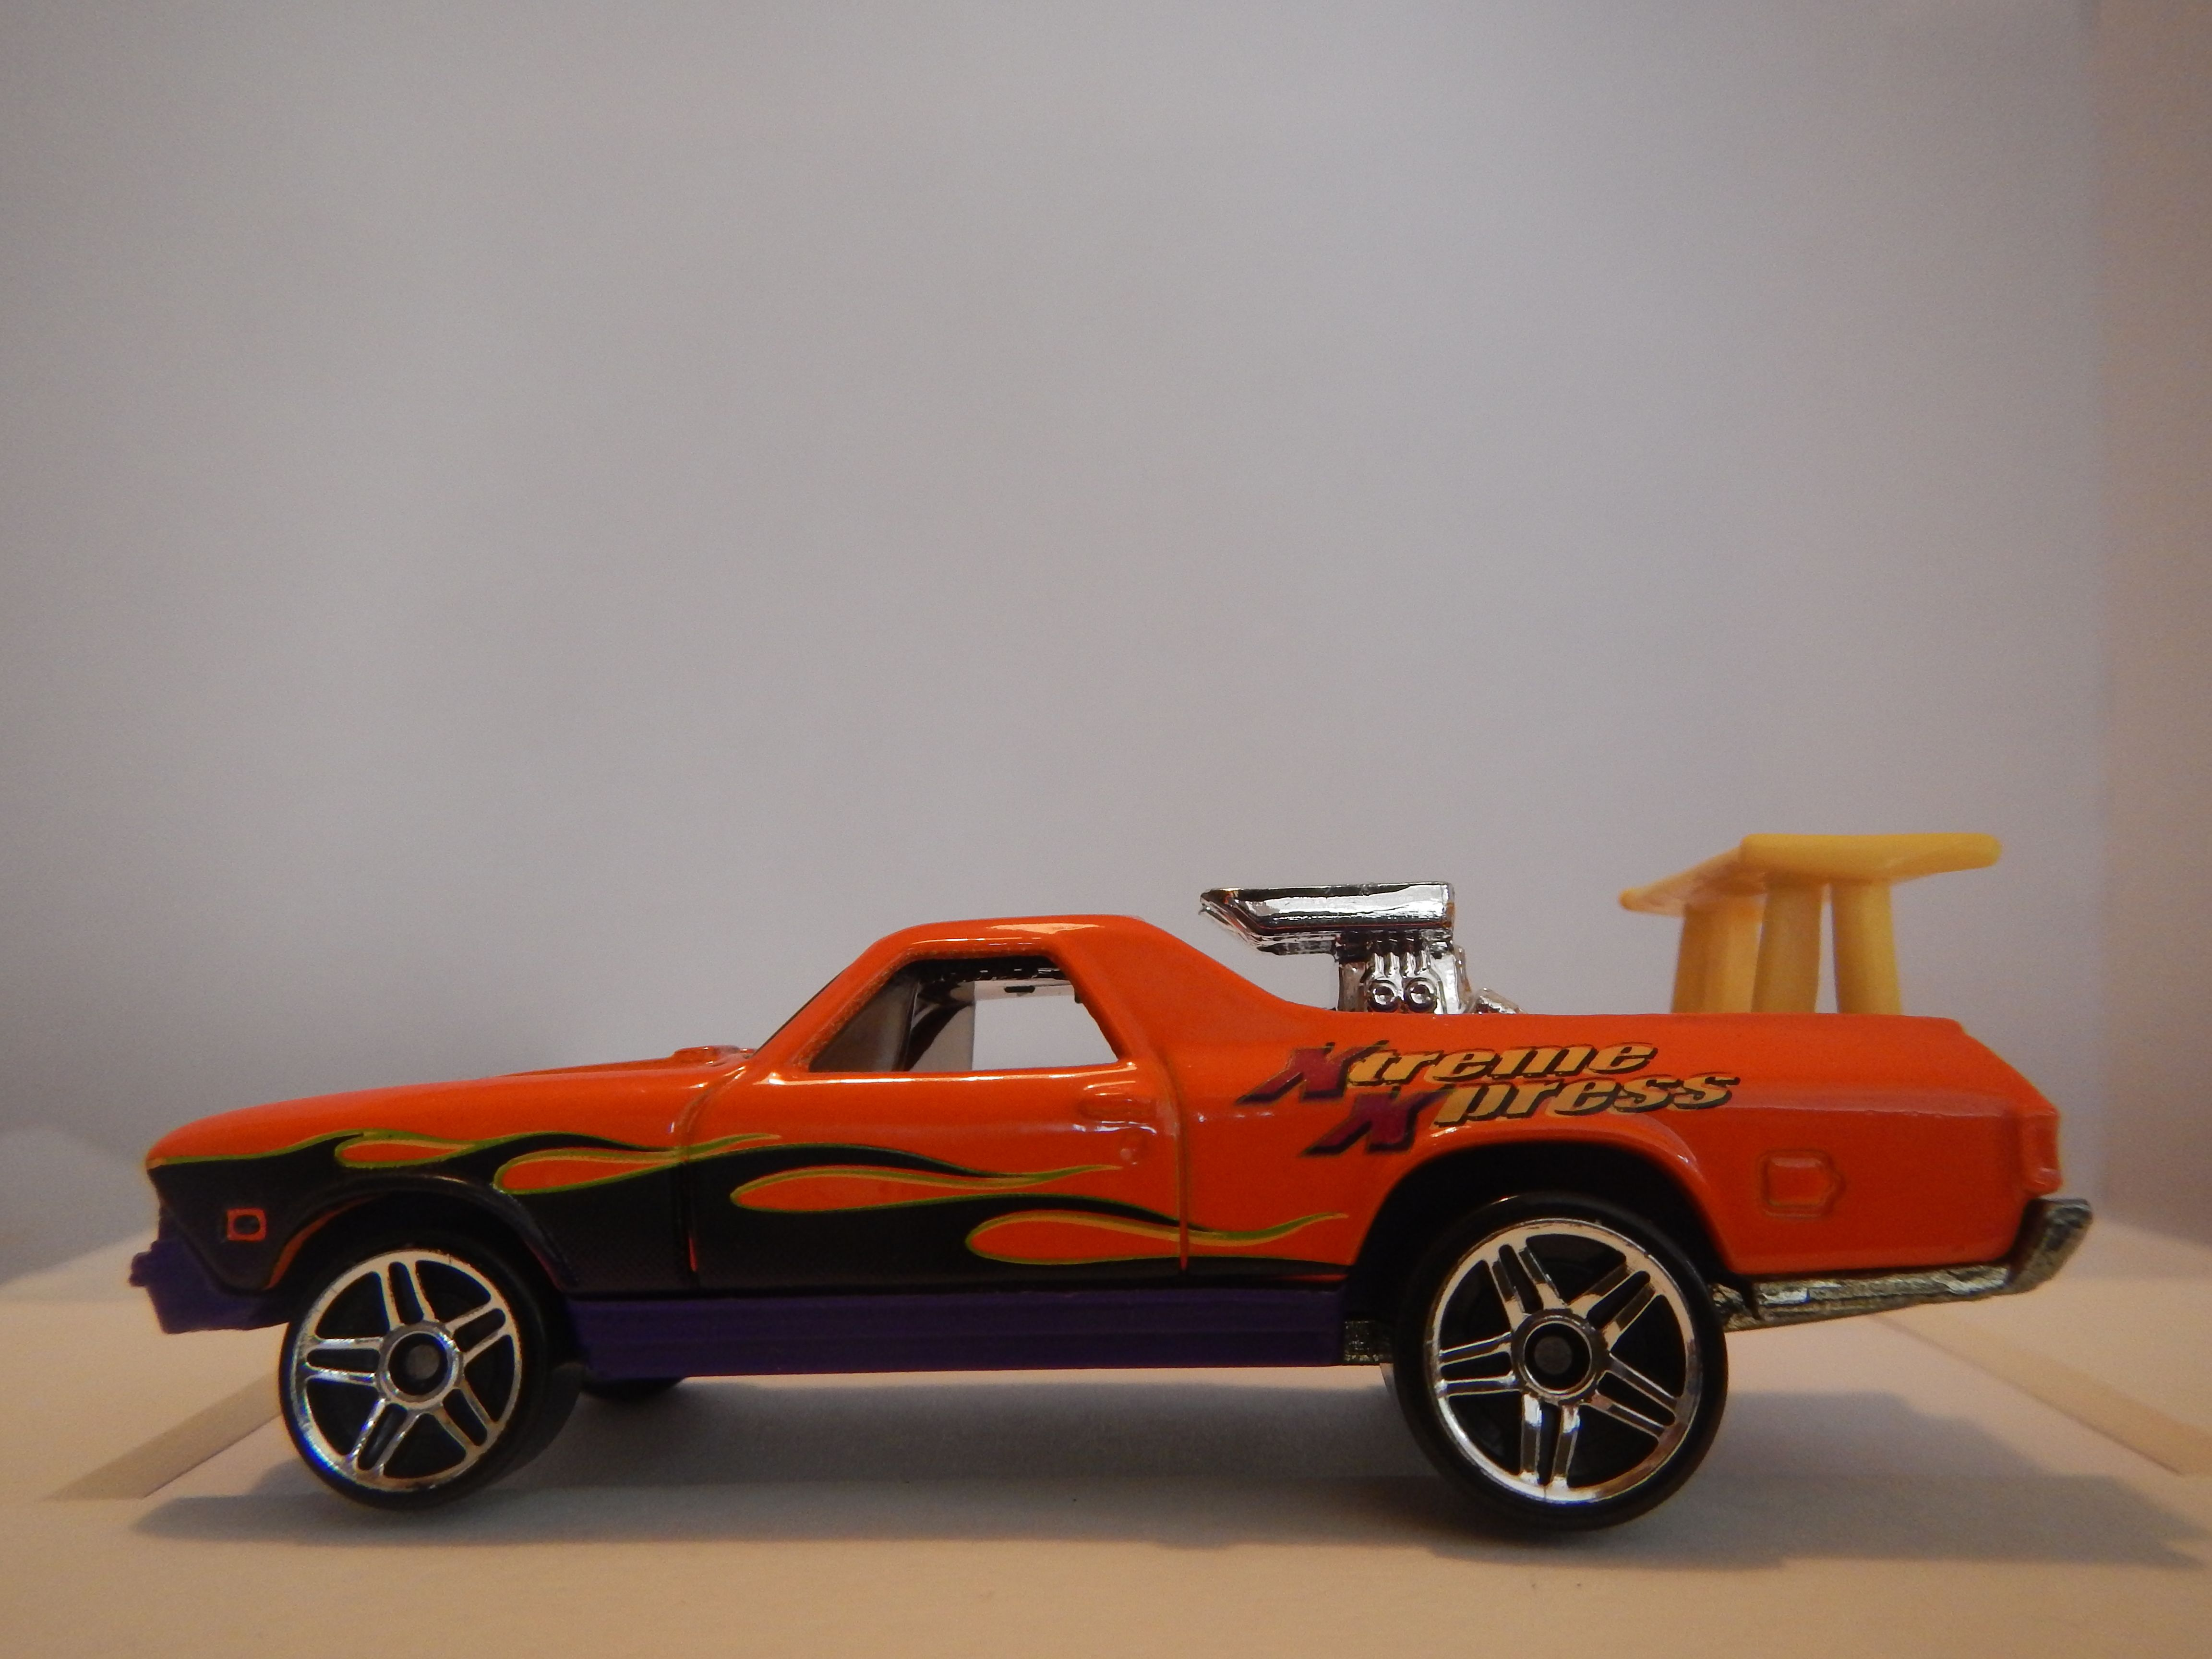 68 Chevrolet El Camino By Hot Wheels 1999 Thailand